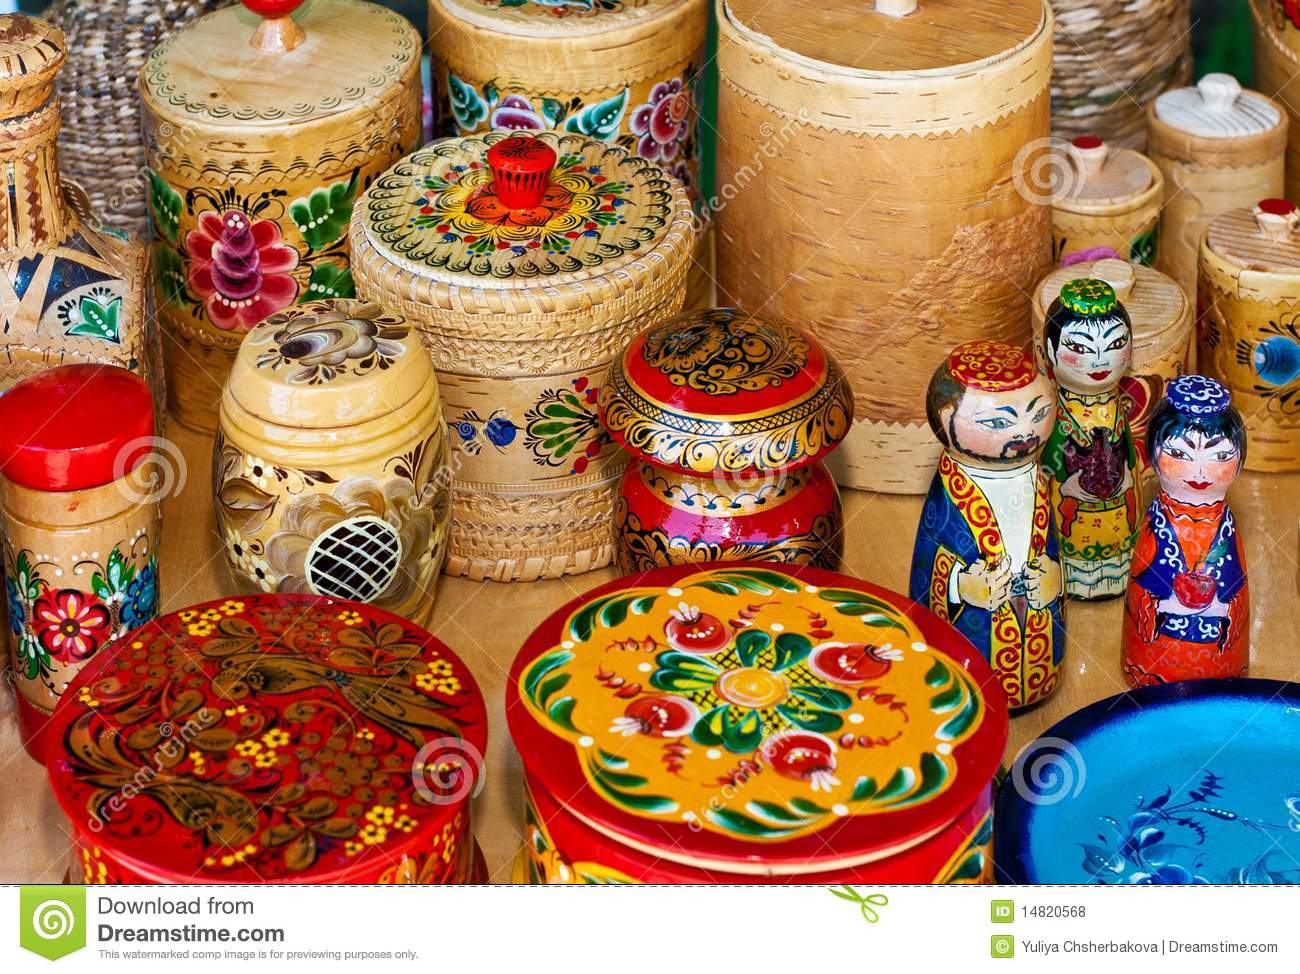 Cottage industry stock photo. Image of culture, figures ...